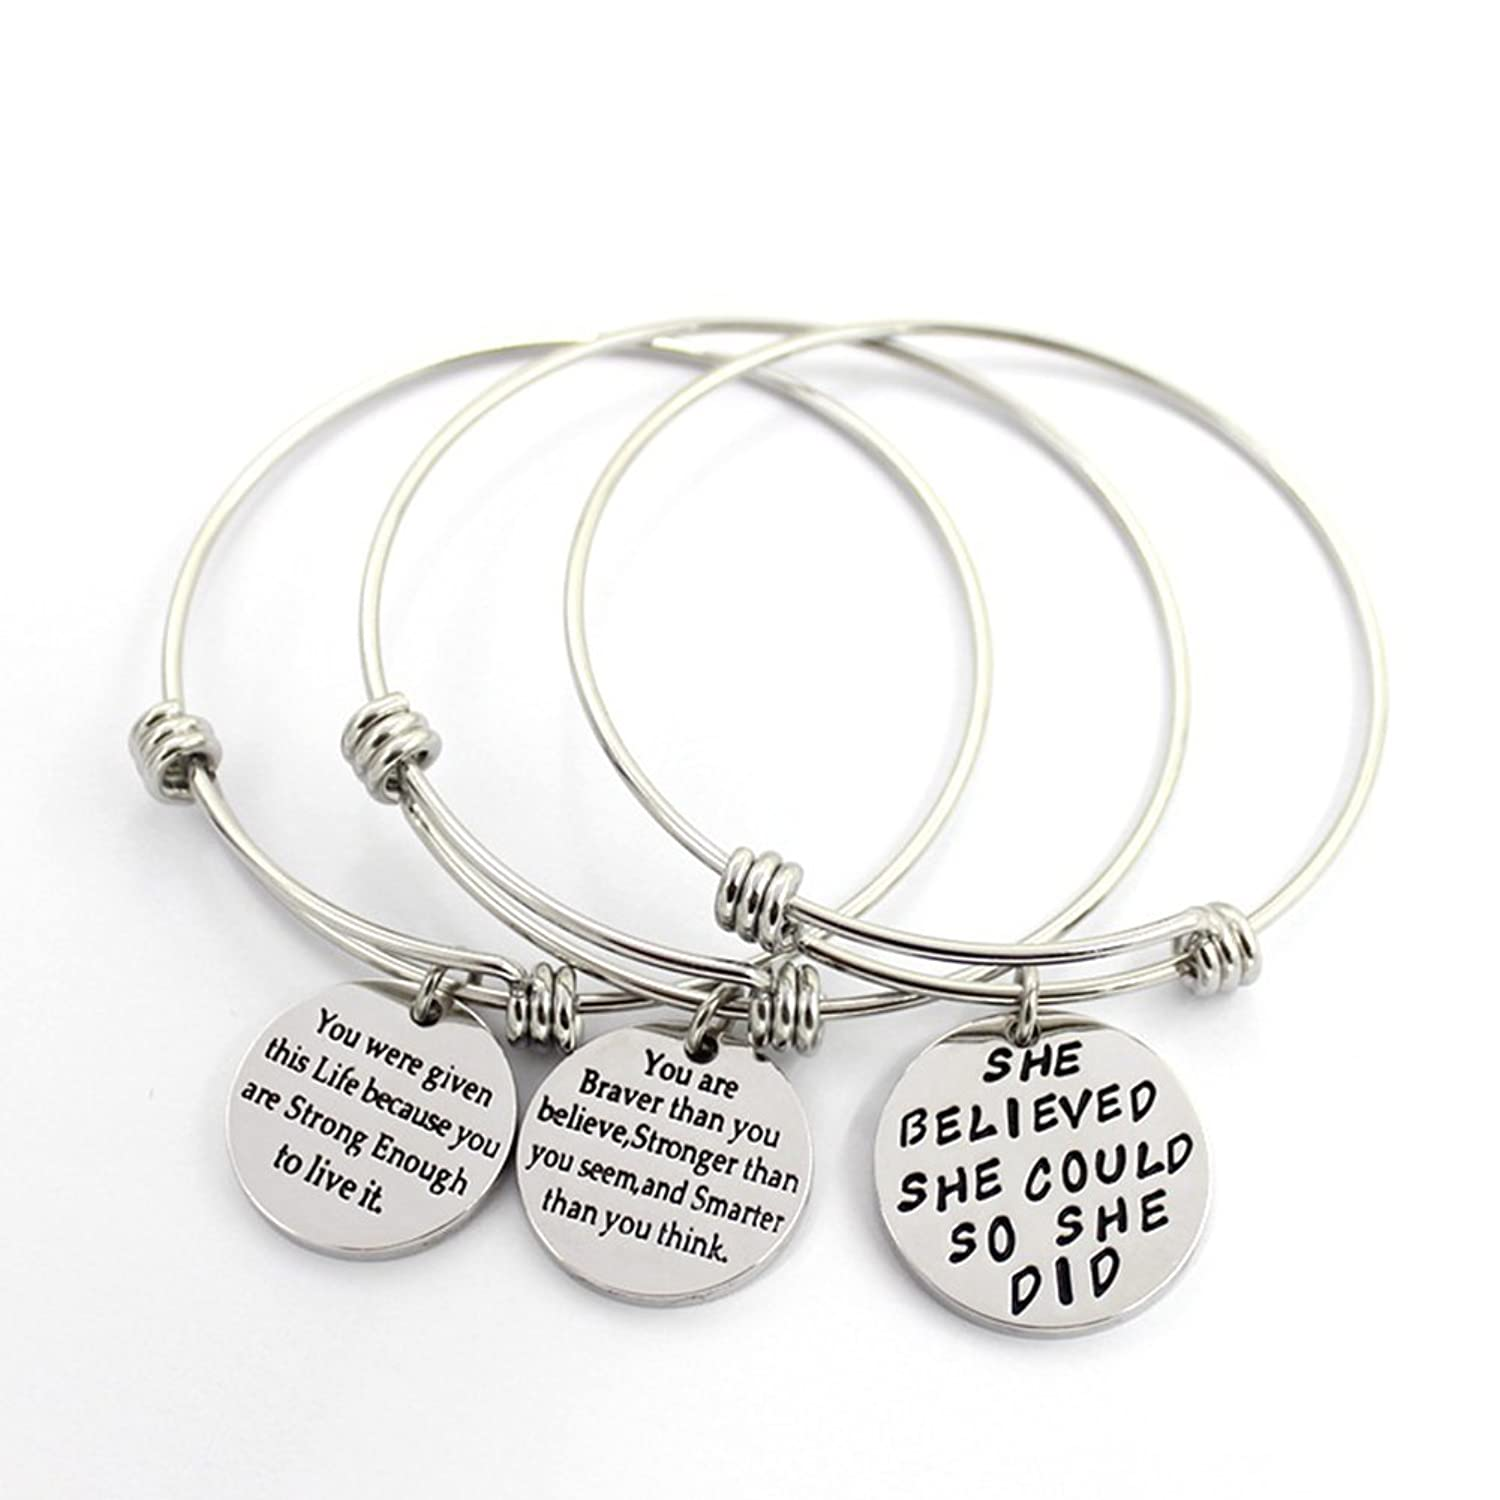 message gift never surrender charm bangle bangles adjustable bracelet with stop inspired in item jewelry inspirational wire crystal from fishhook orange